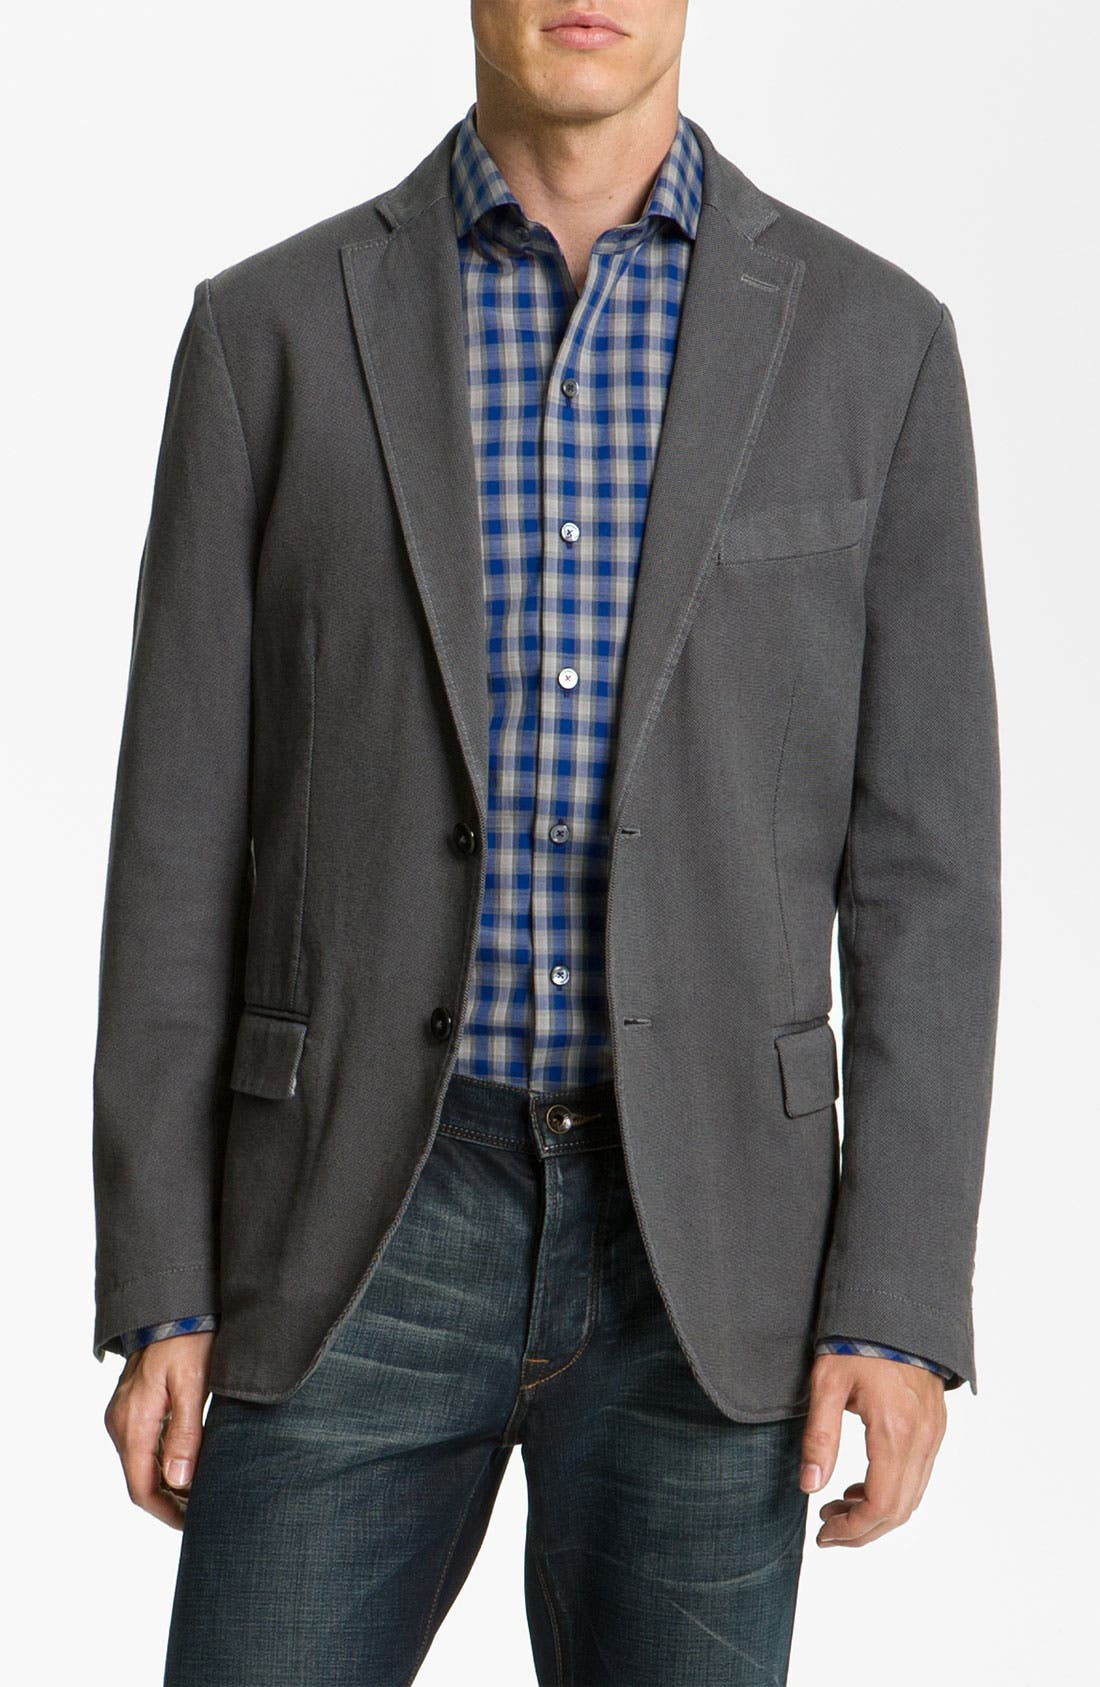 Alternate Image 1 Selected - Zachary Prell 'Waverly' Sportcoat